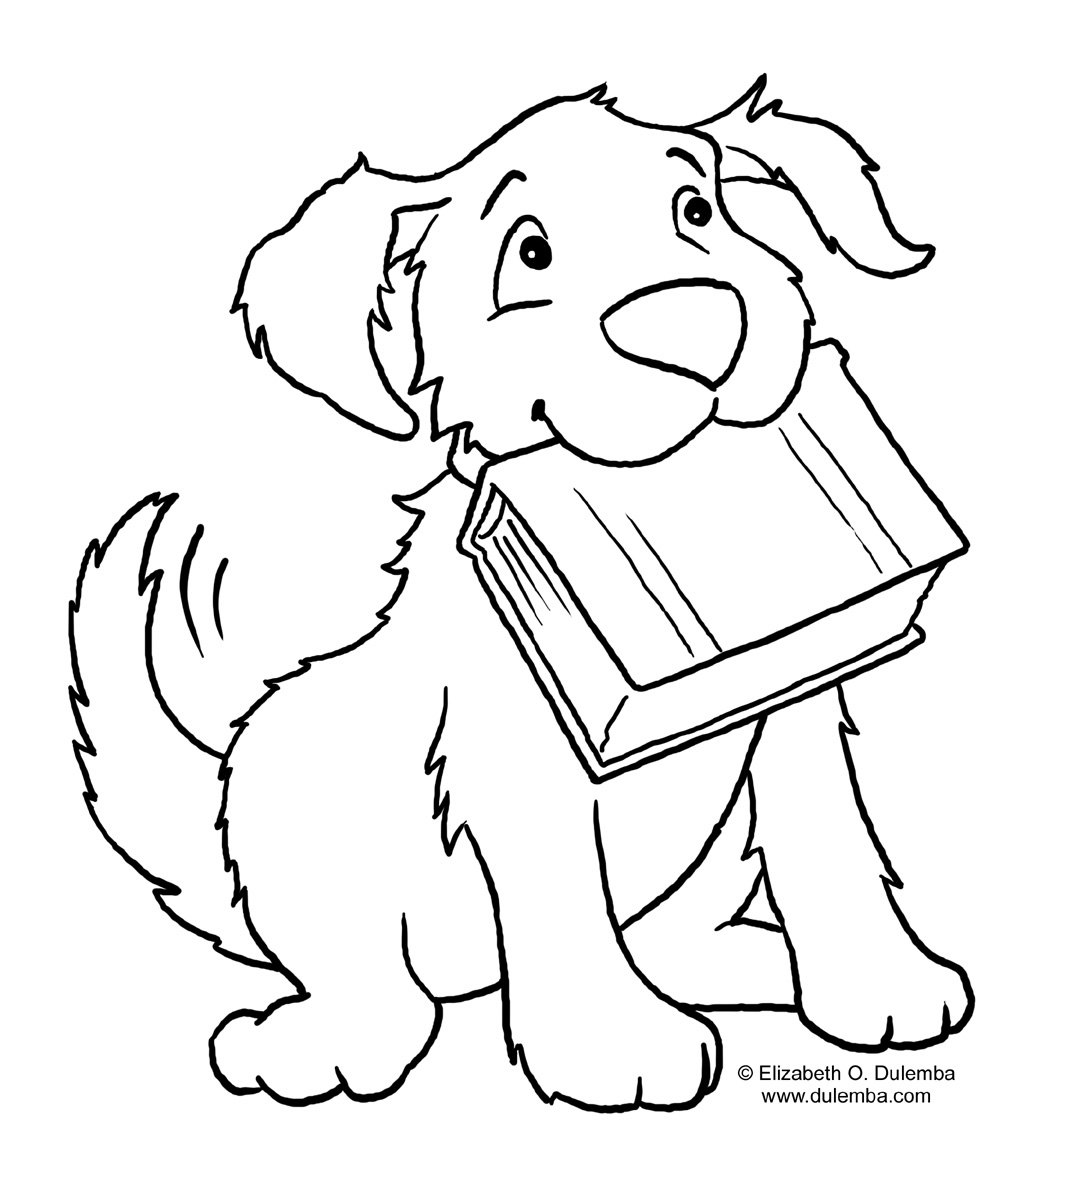 1070x1200 Children Coloring Pages